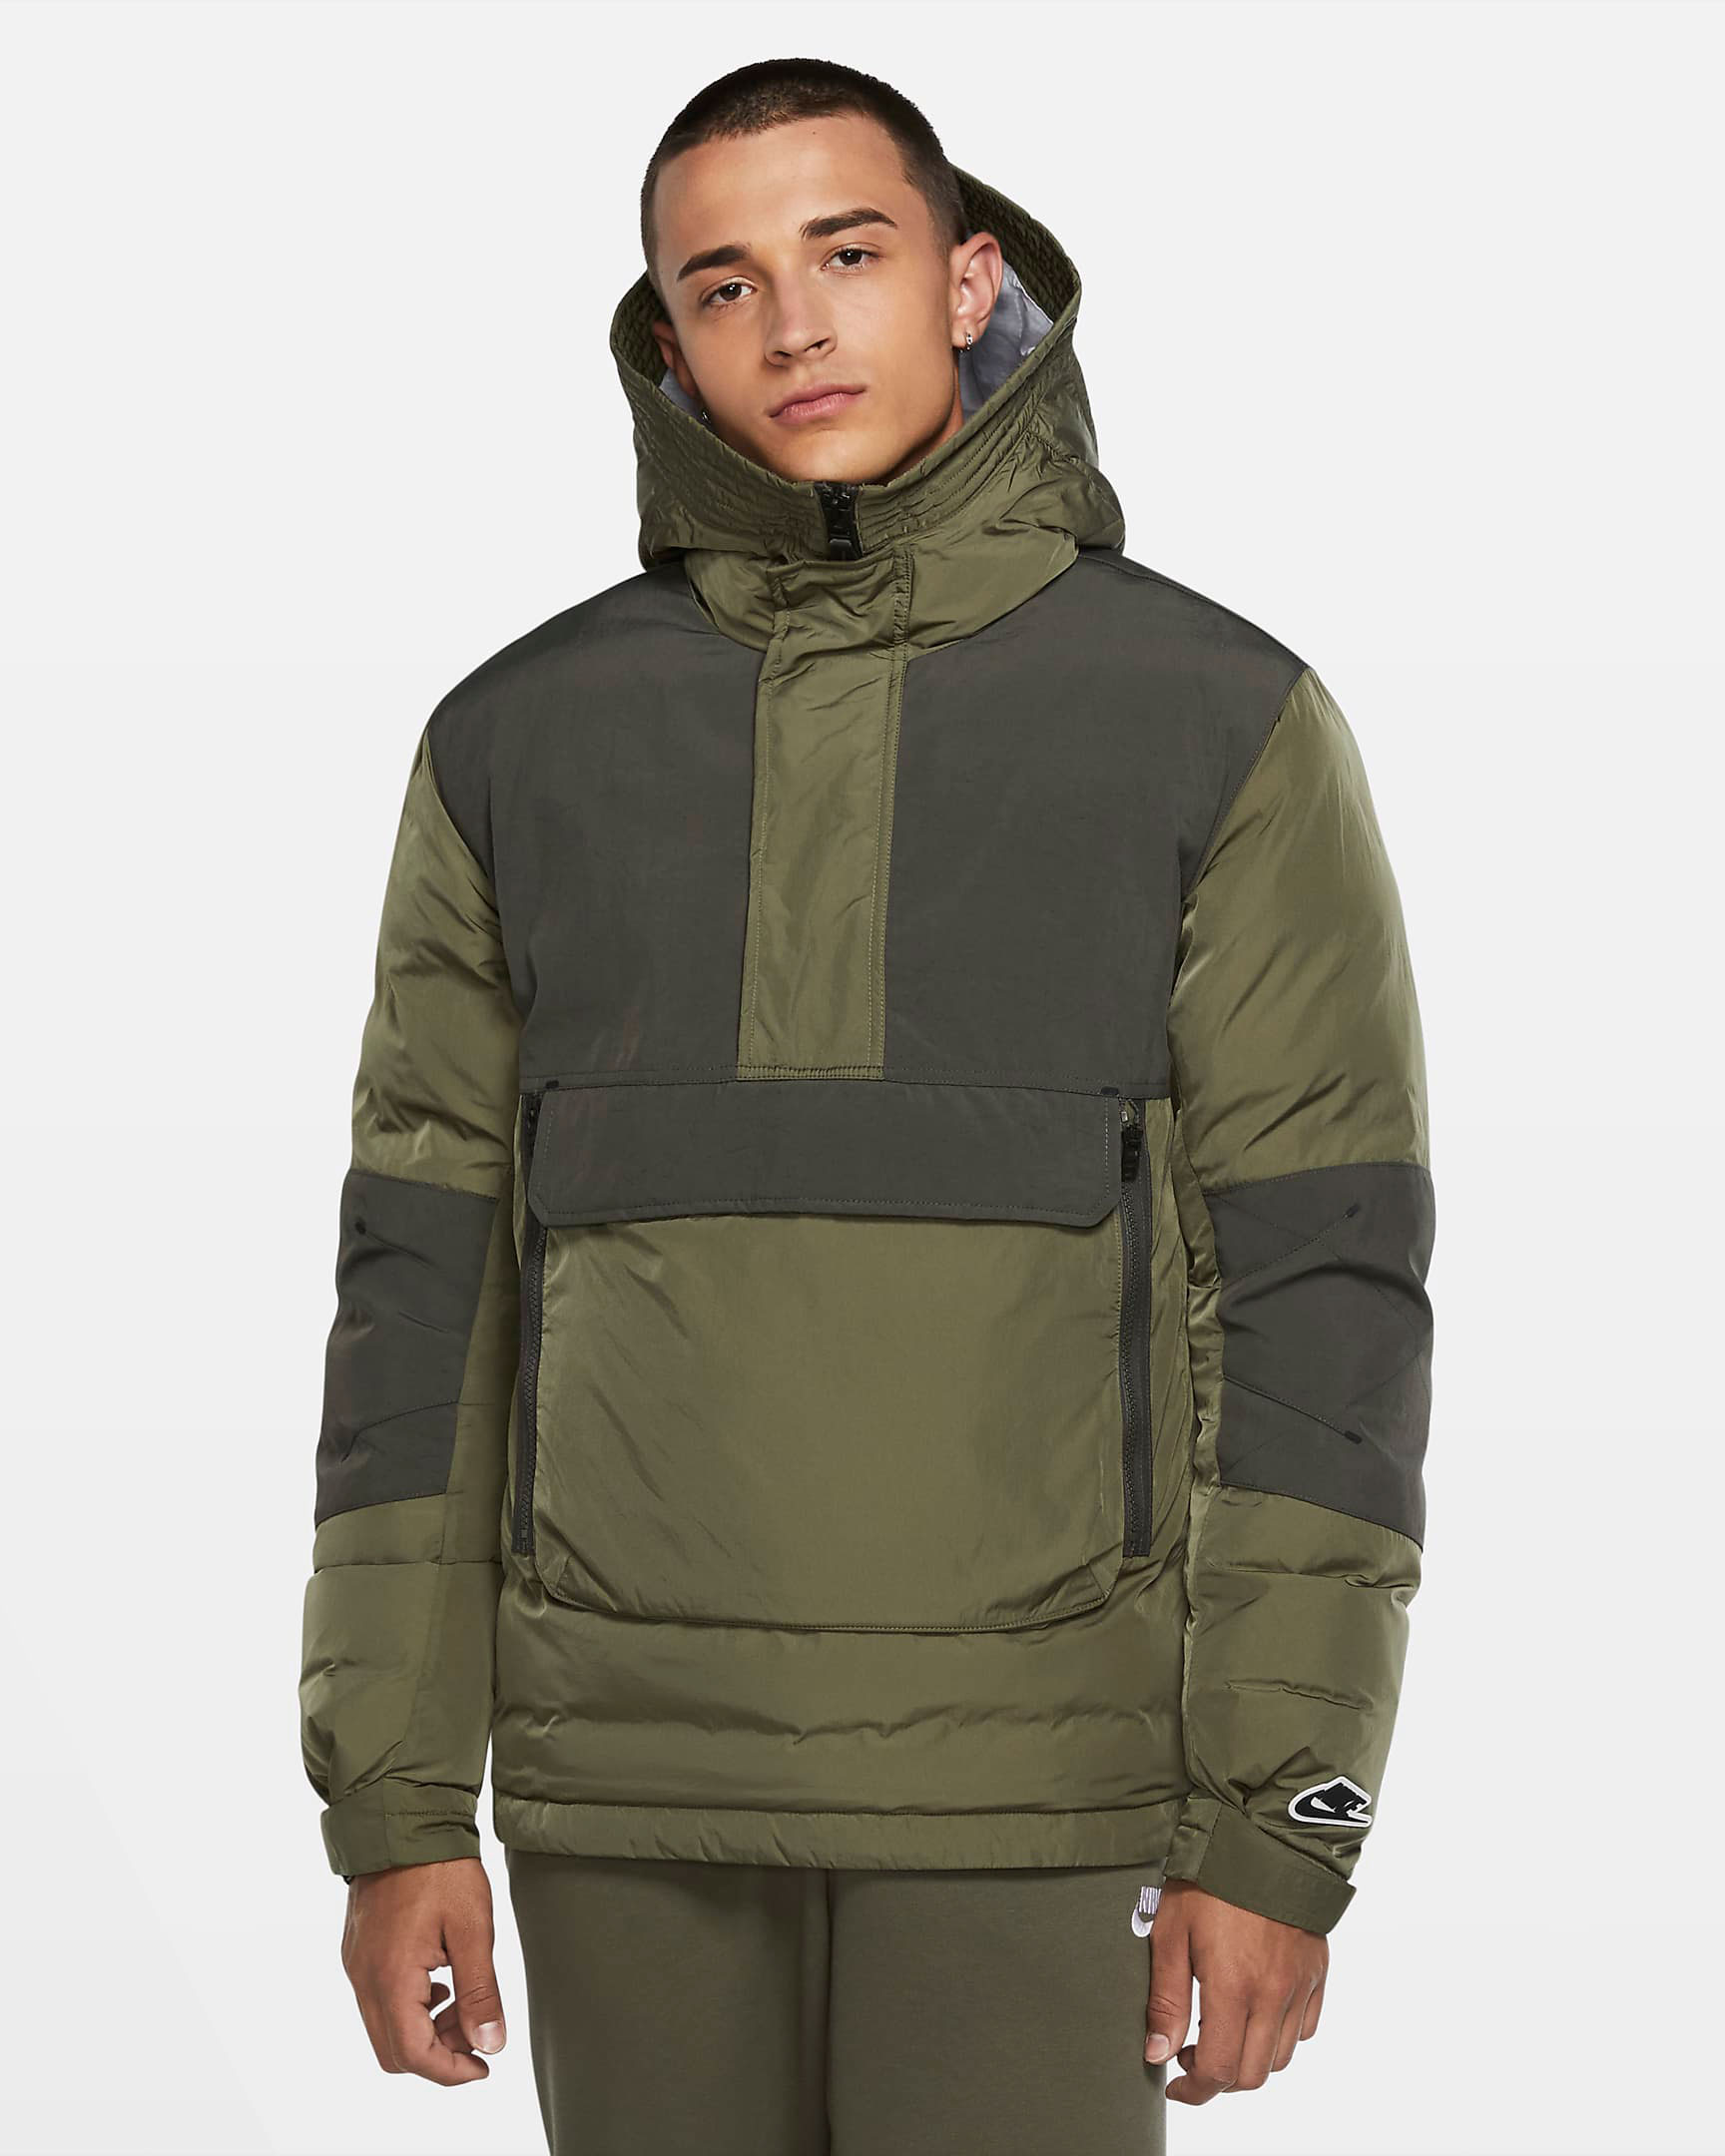 nike-sportswear-anorak-jacket-twilight-marsh-olive-green